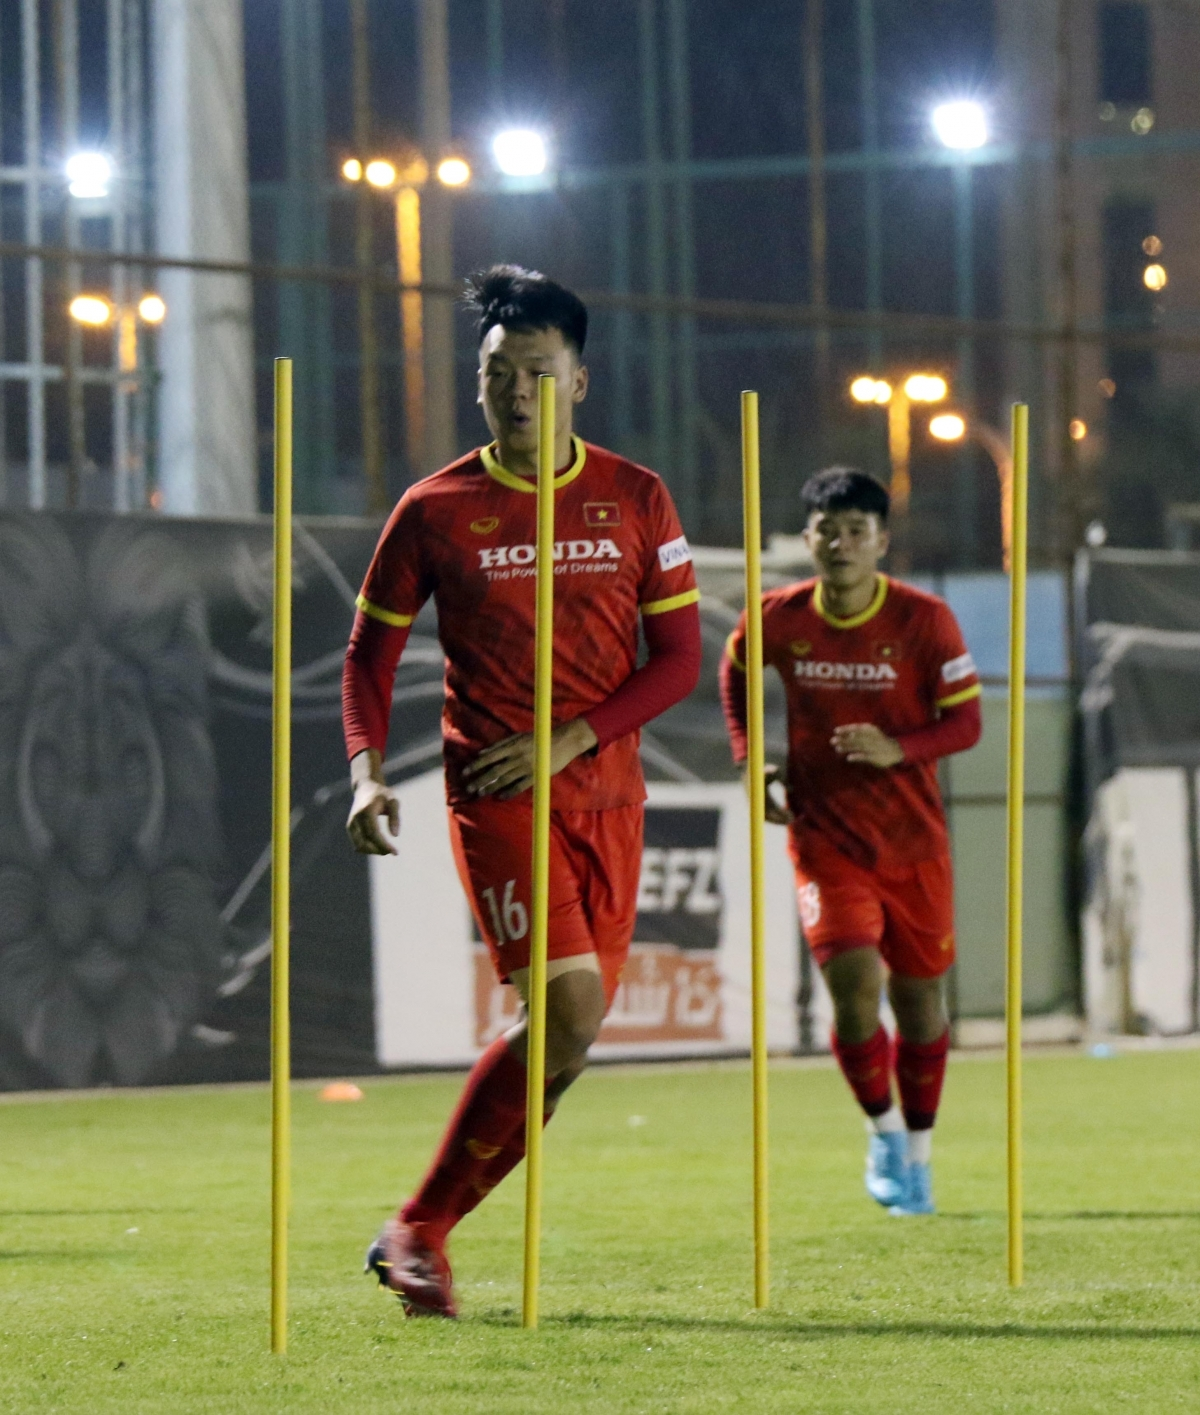 Some footballers such as Thanh Chung are recovering from recent injuries.